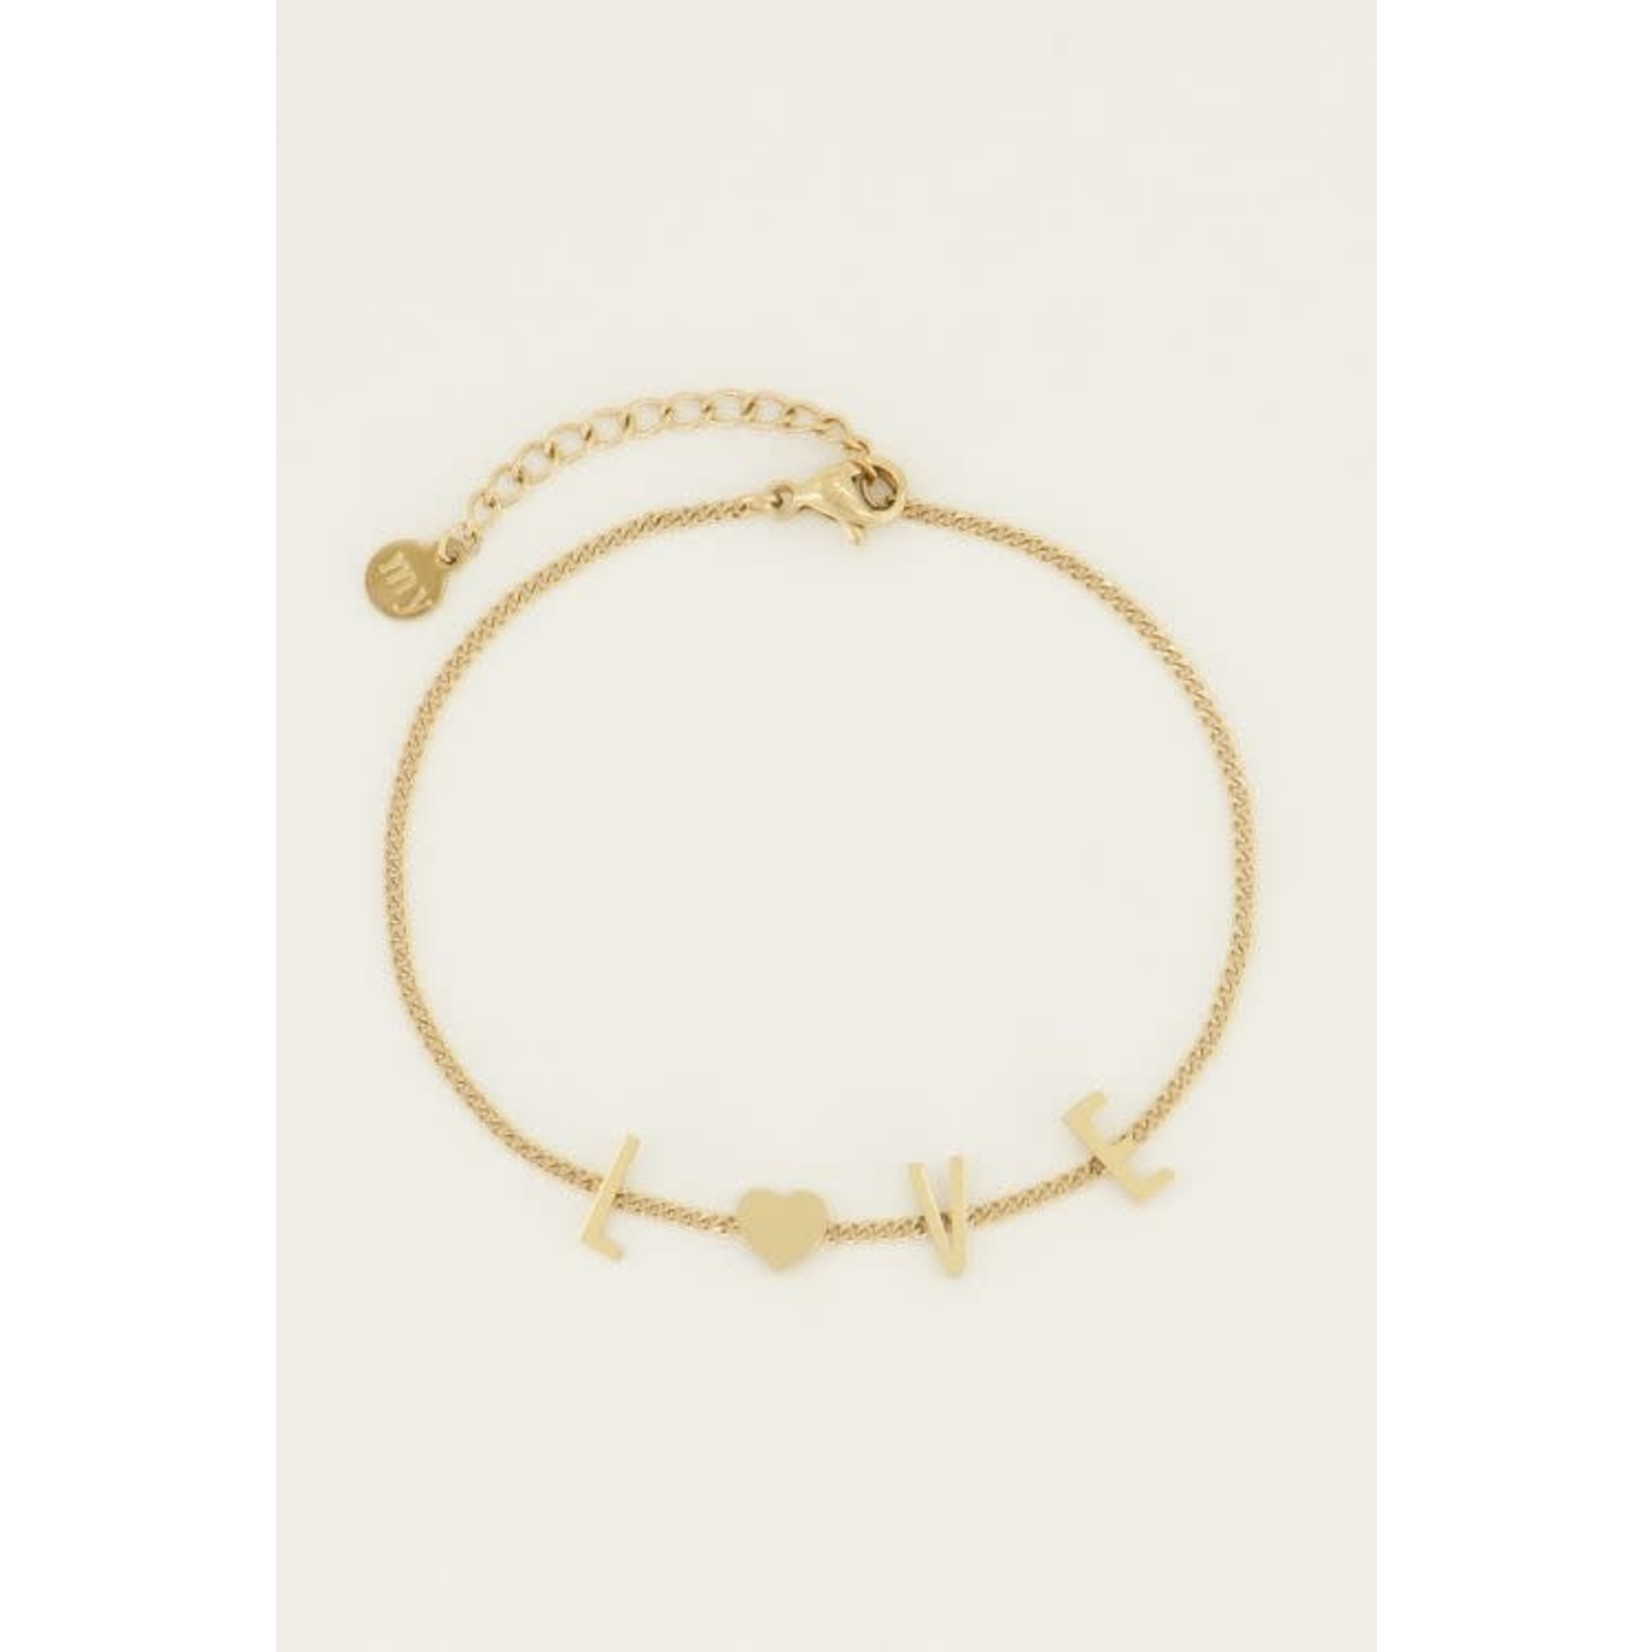 MY JEWELLERY Armband love letters GOUD